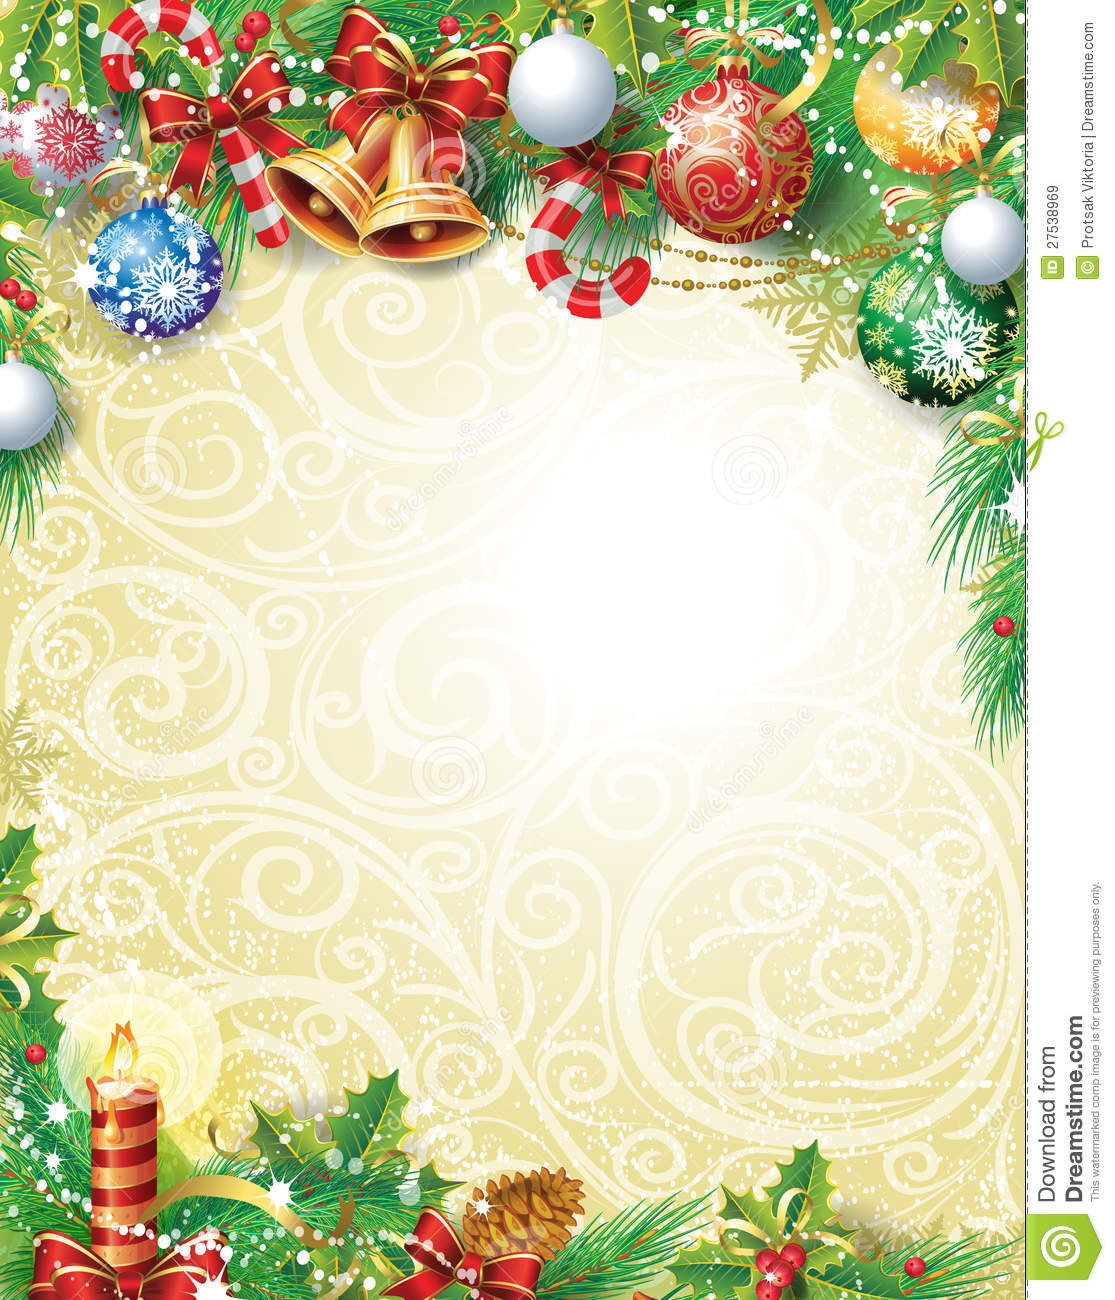 Vintage Christmas Background Royalty Free Stock Images ...